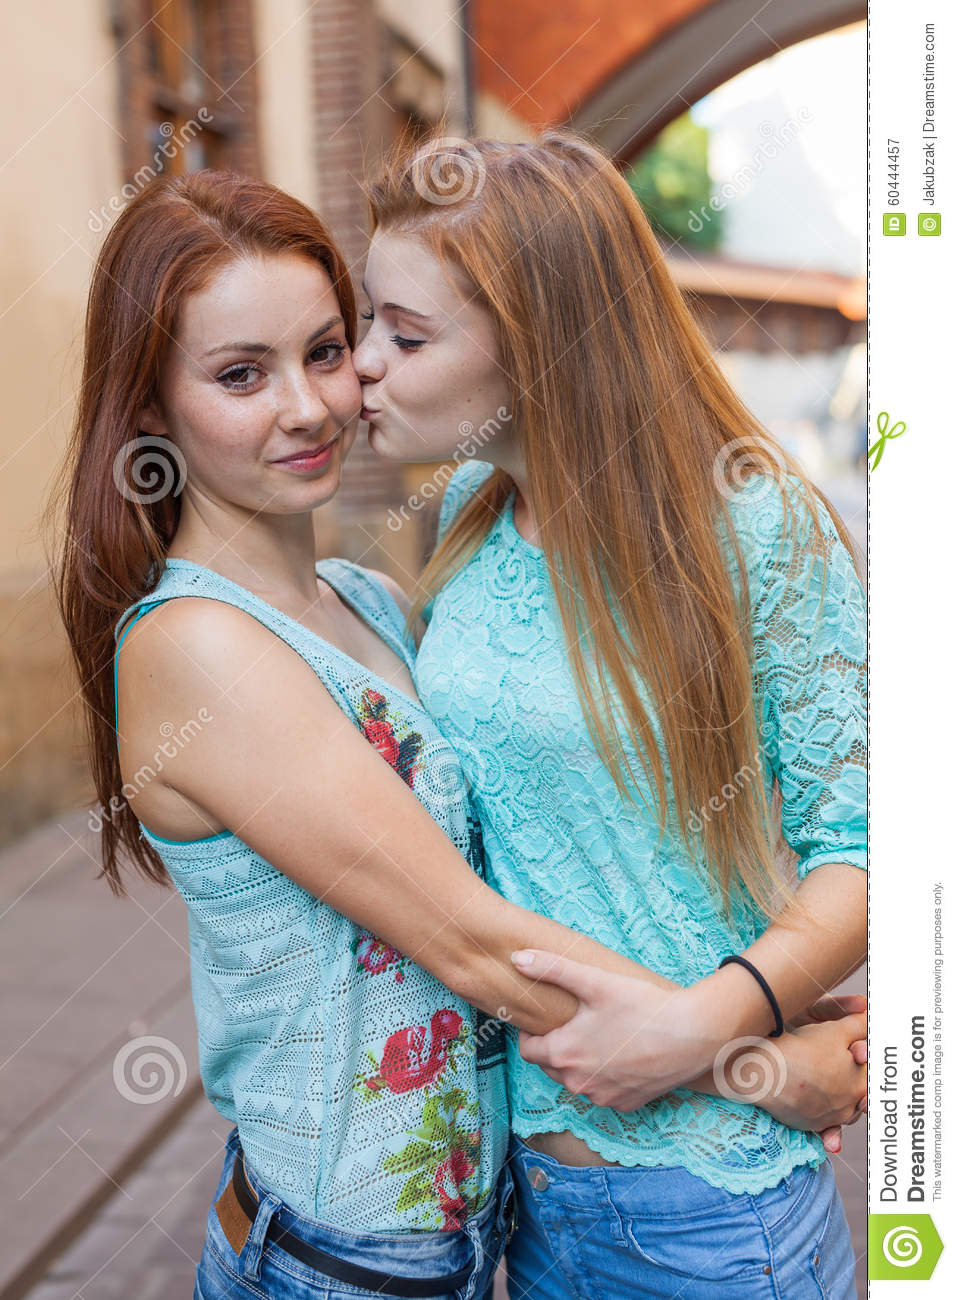 How to kiss your best friend girl-8088